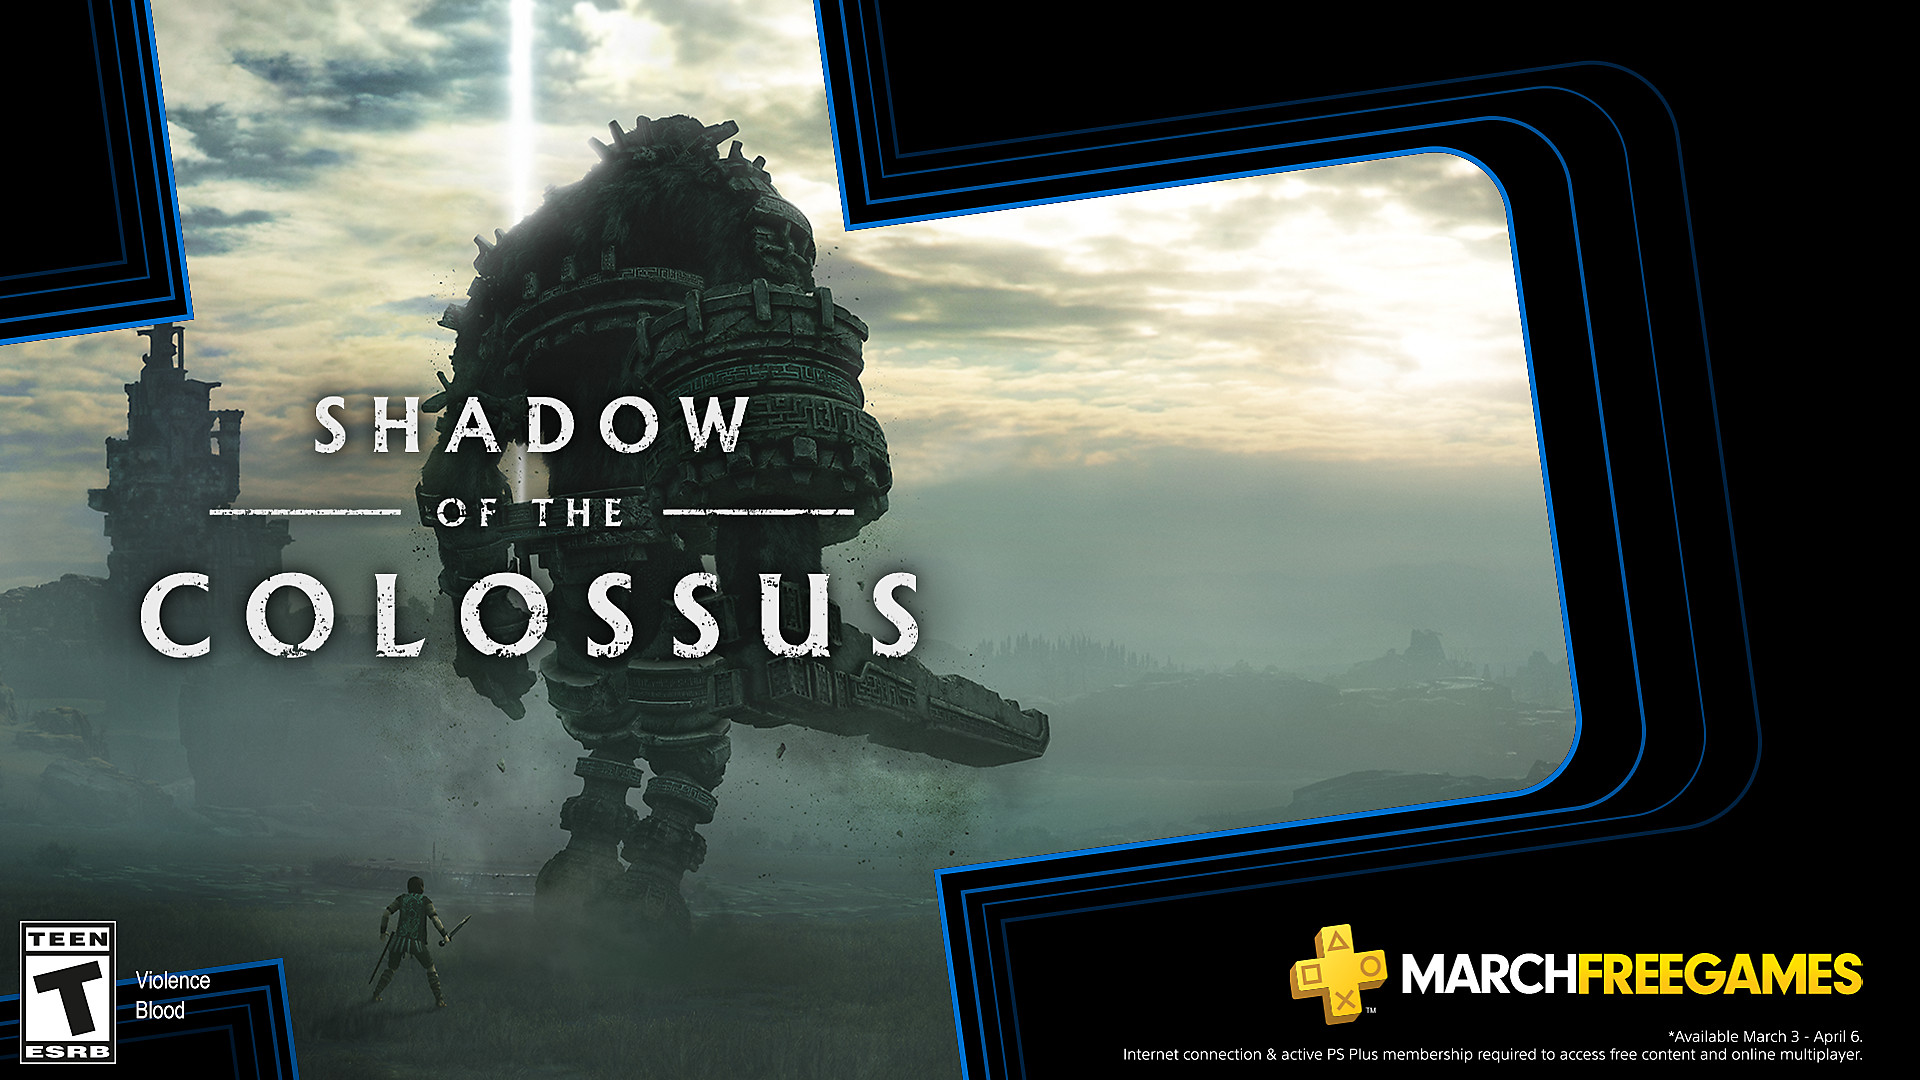 Click here to get Shadow of the Colossus free from the PlayStation Store for PlayStation Plus members